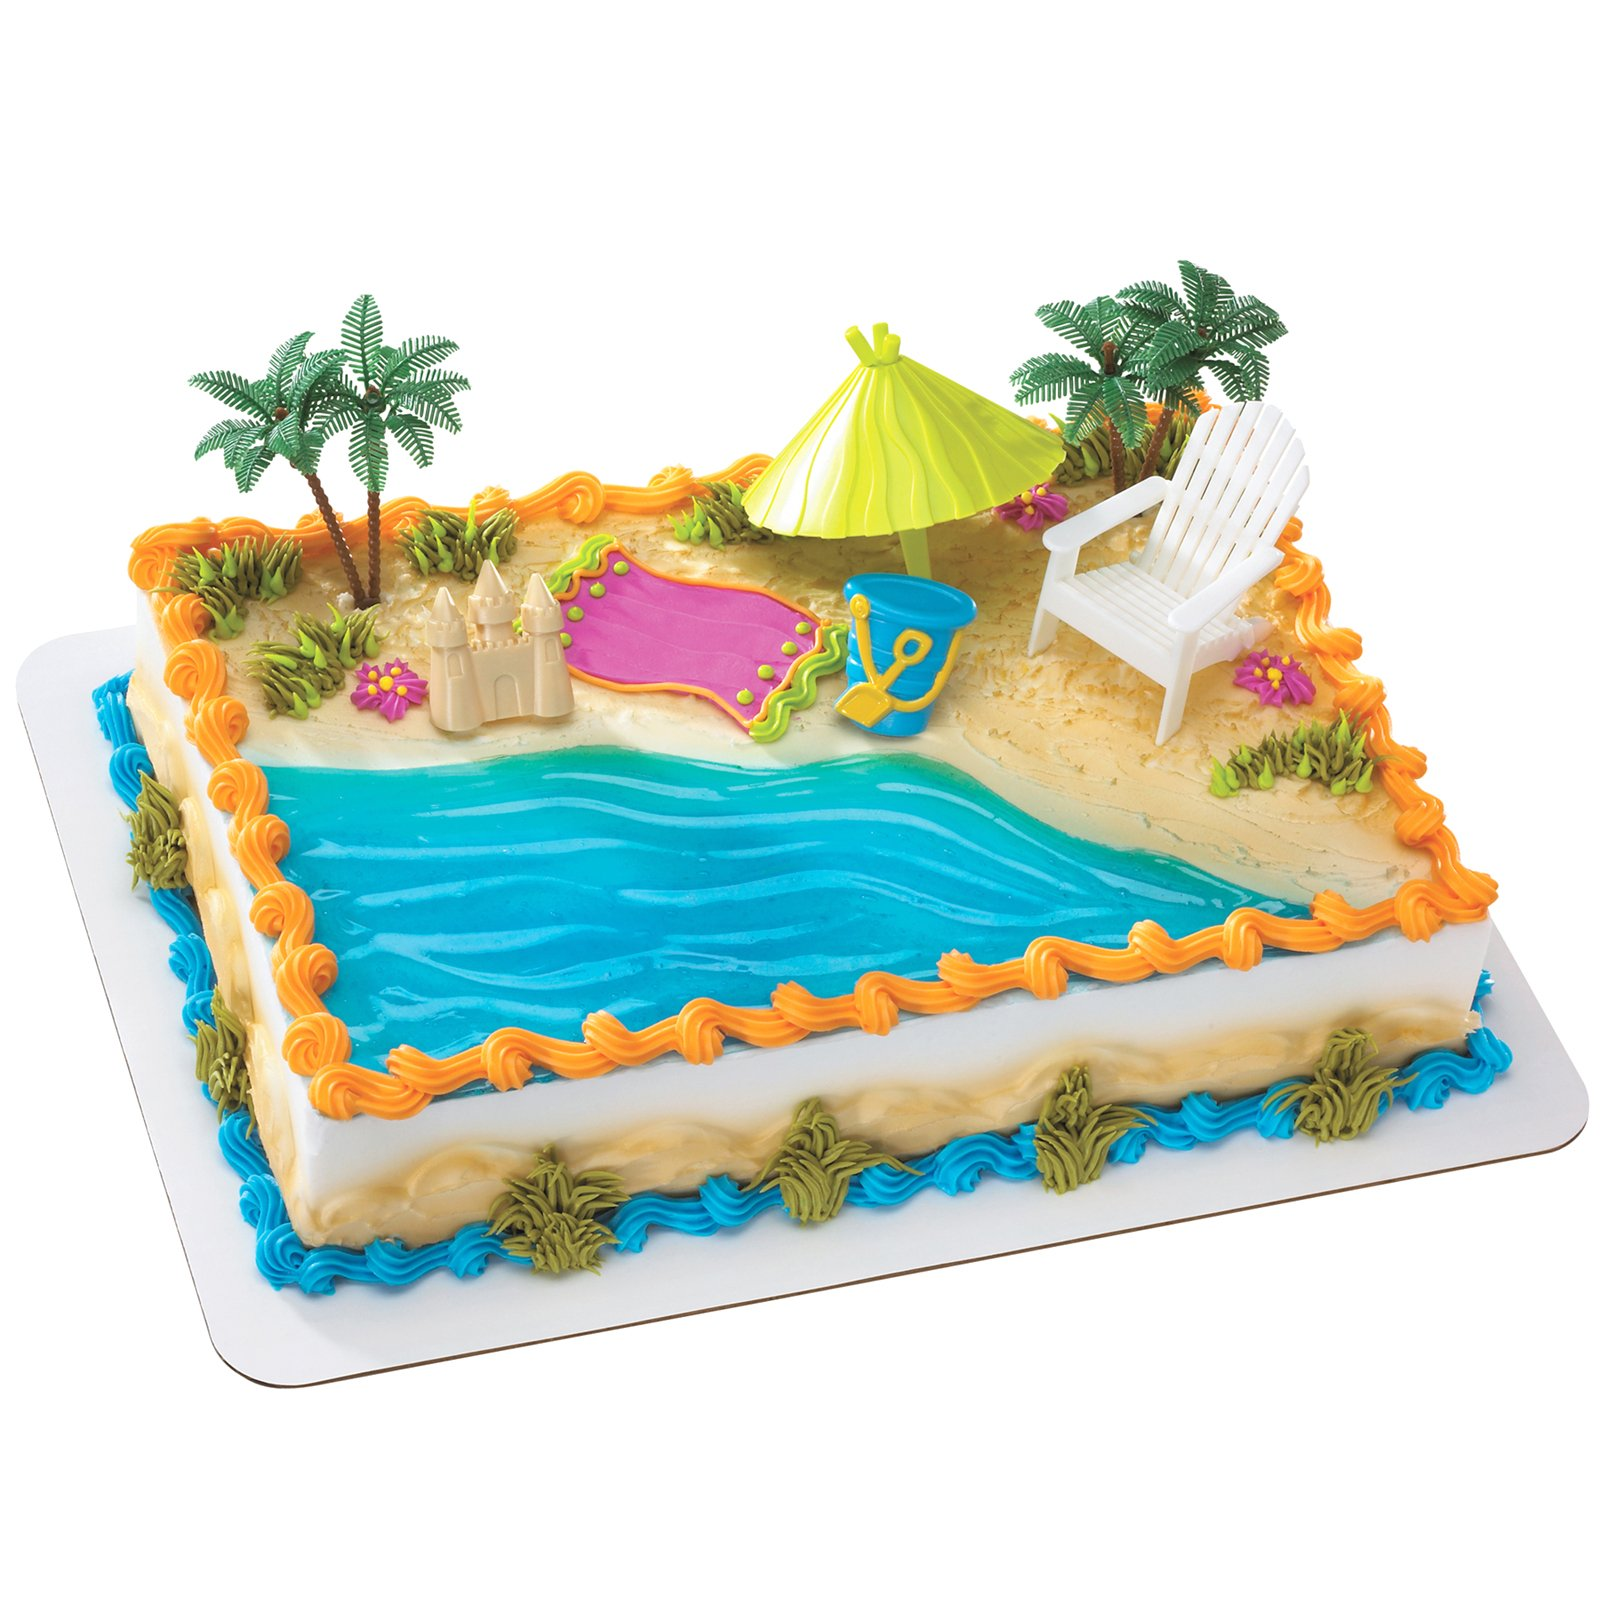 Cake Theme For Birthday : Celebrate Summer Birthdays with Birthdayexpress.com